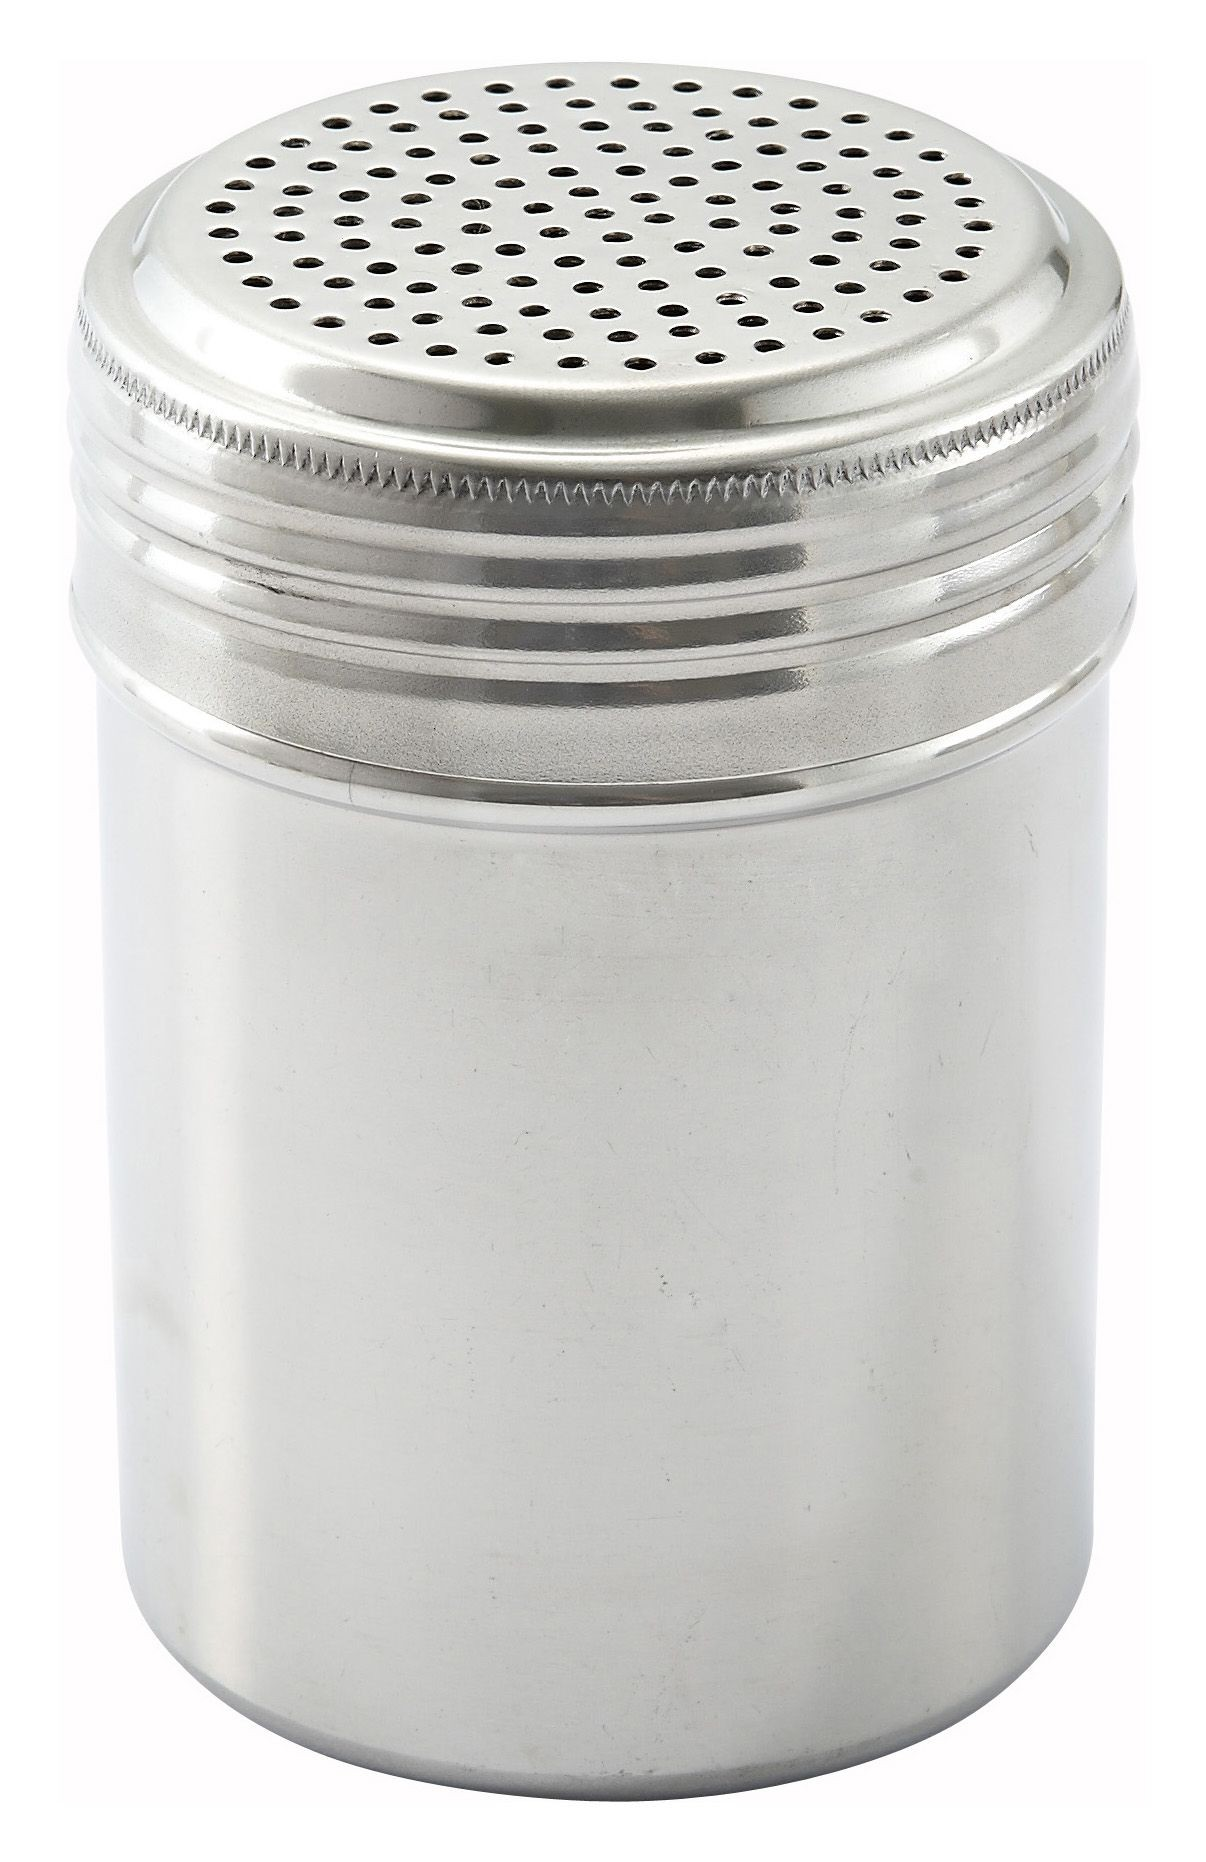 Stainless Steel 10 Oz. Dredge Without Handle, Winco Brand